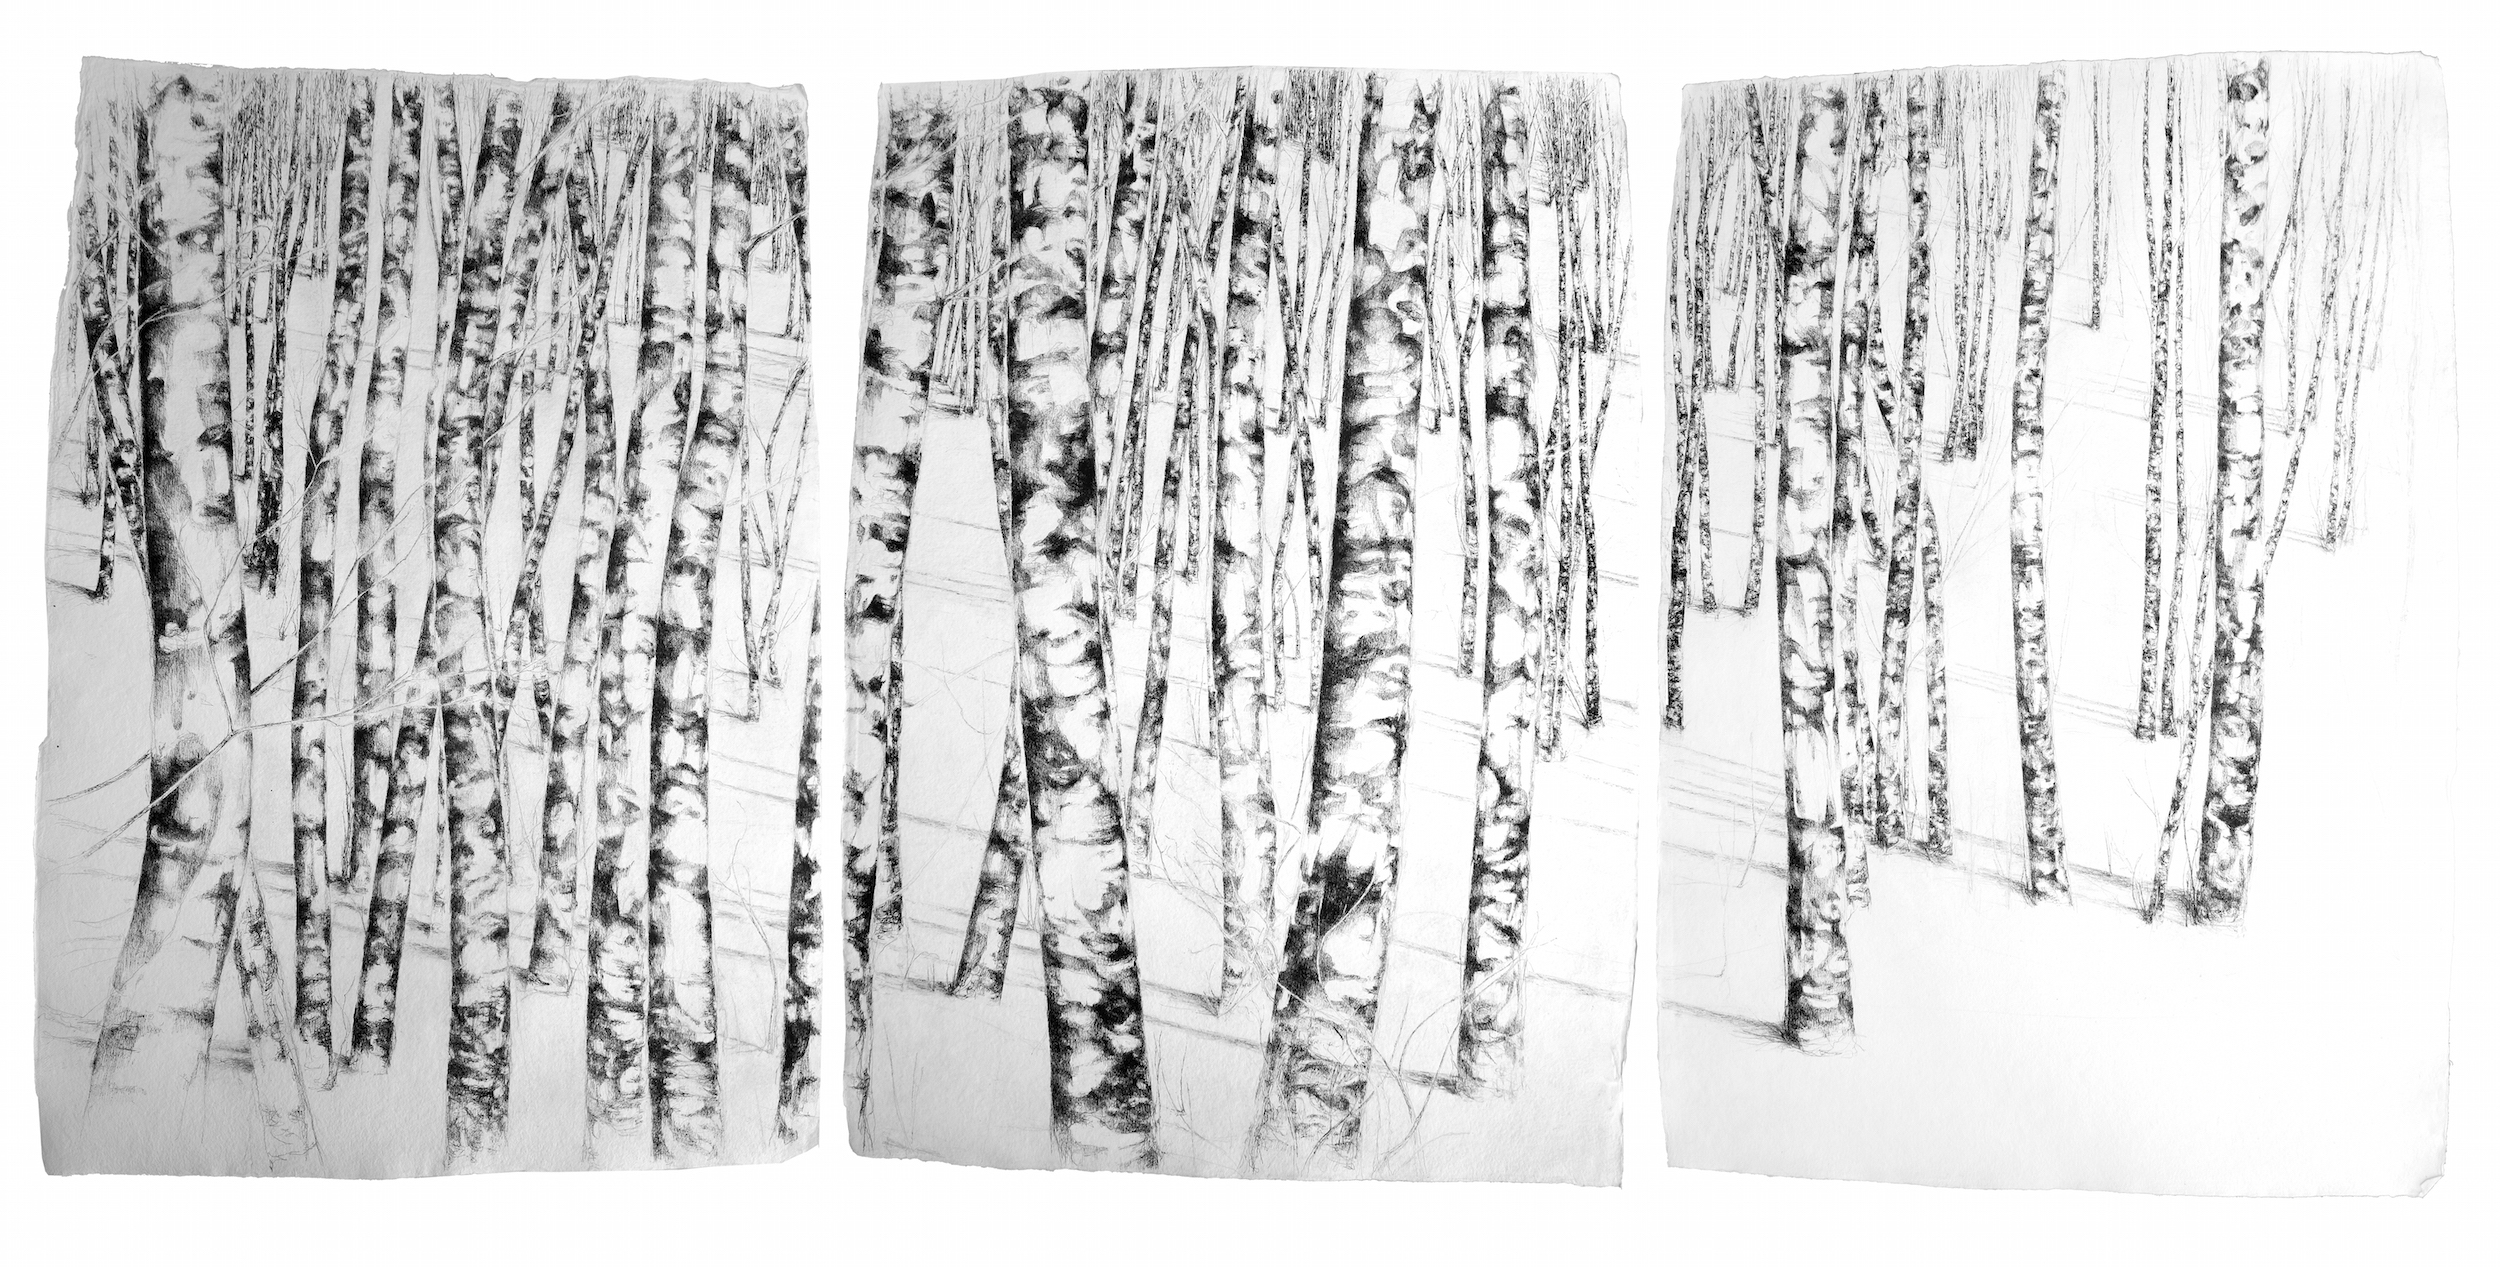 Title: Lloyd Wright triptych Size: 135 x 300 cm overall Medium: pencil and ink on handmade paper